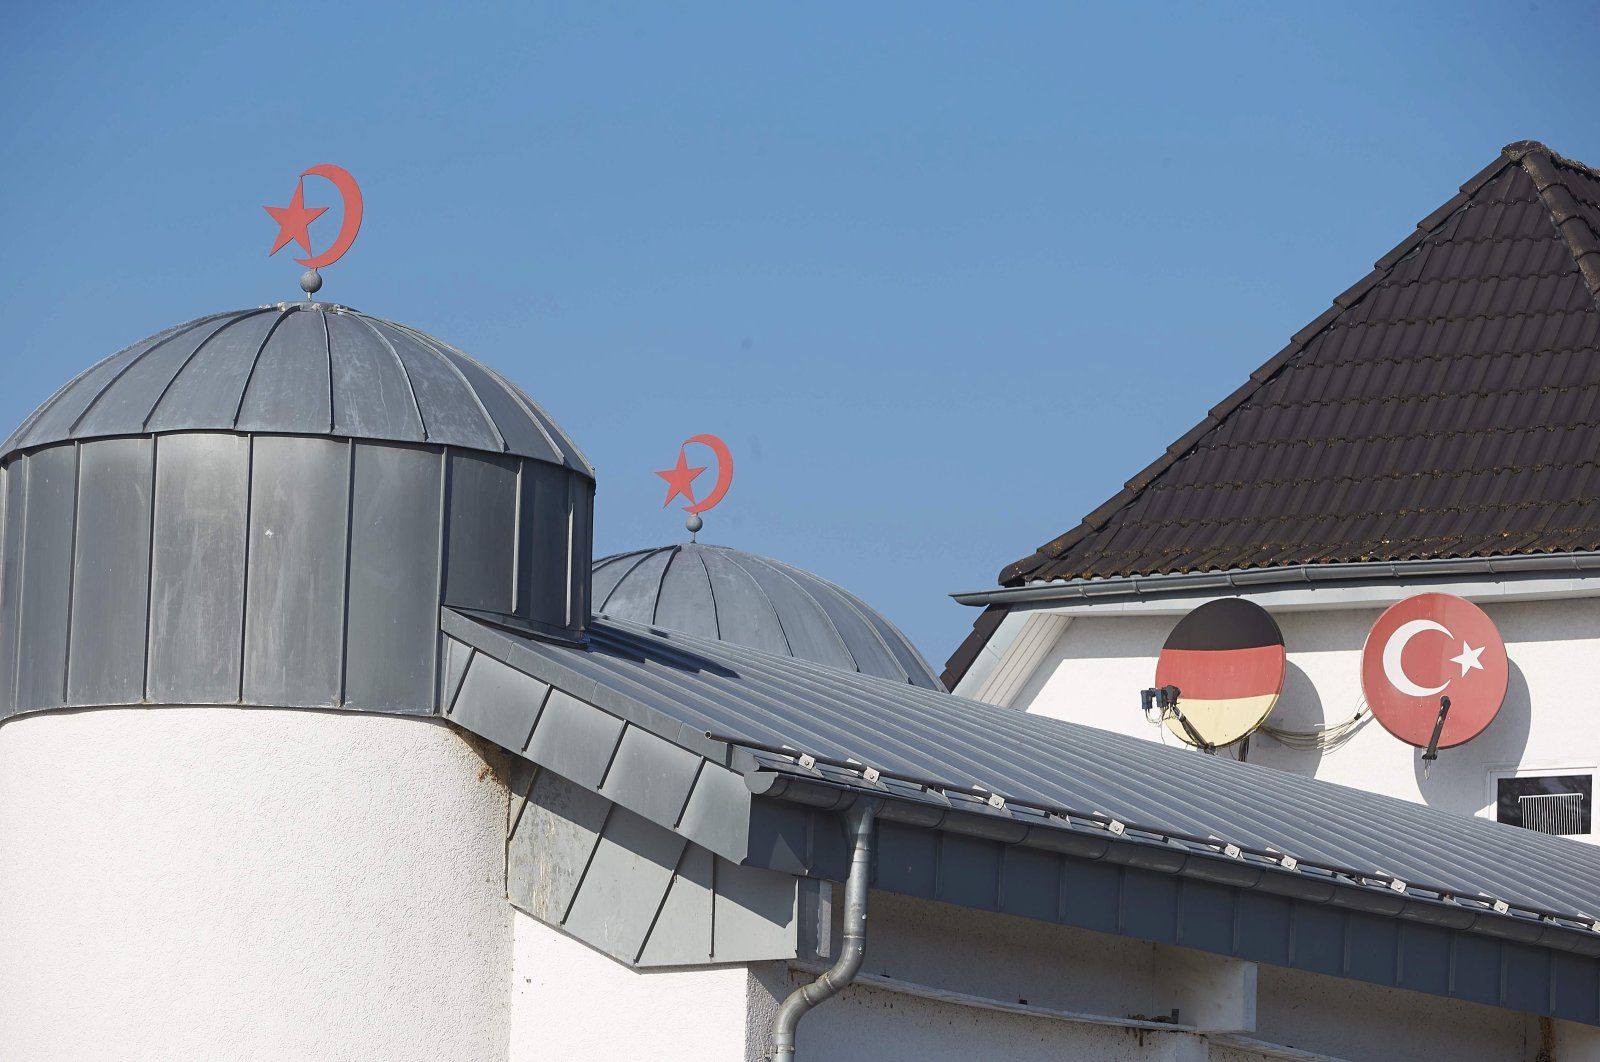 The roof of a mosque is pictured in Furthen, Rhineland-Palatinate, Germany, Feb. 15, 2017. (AFP Photo)